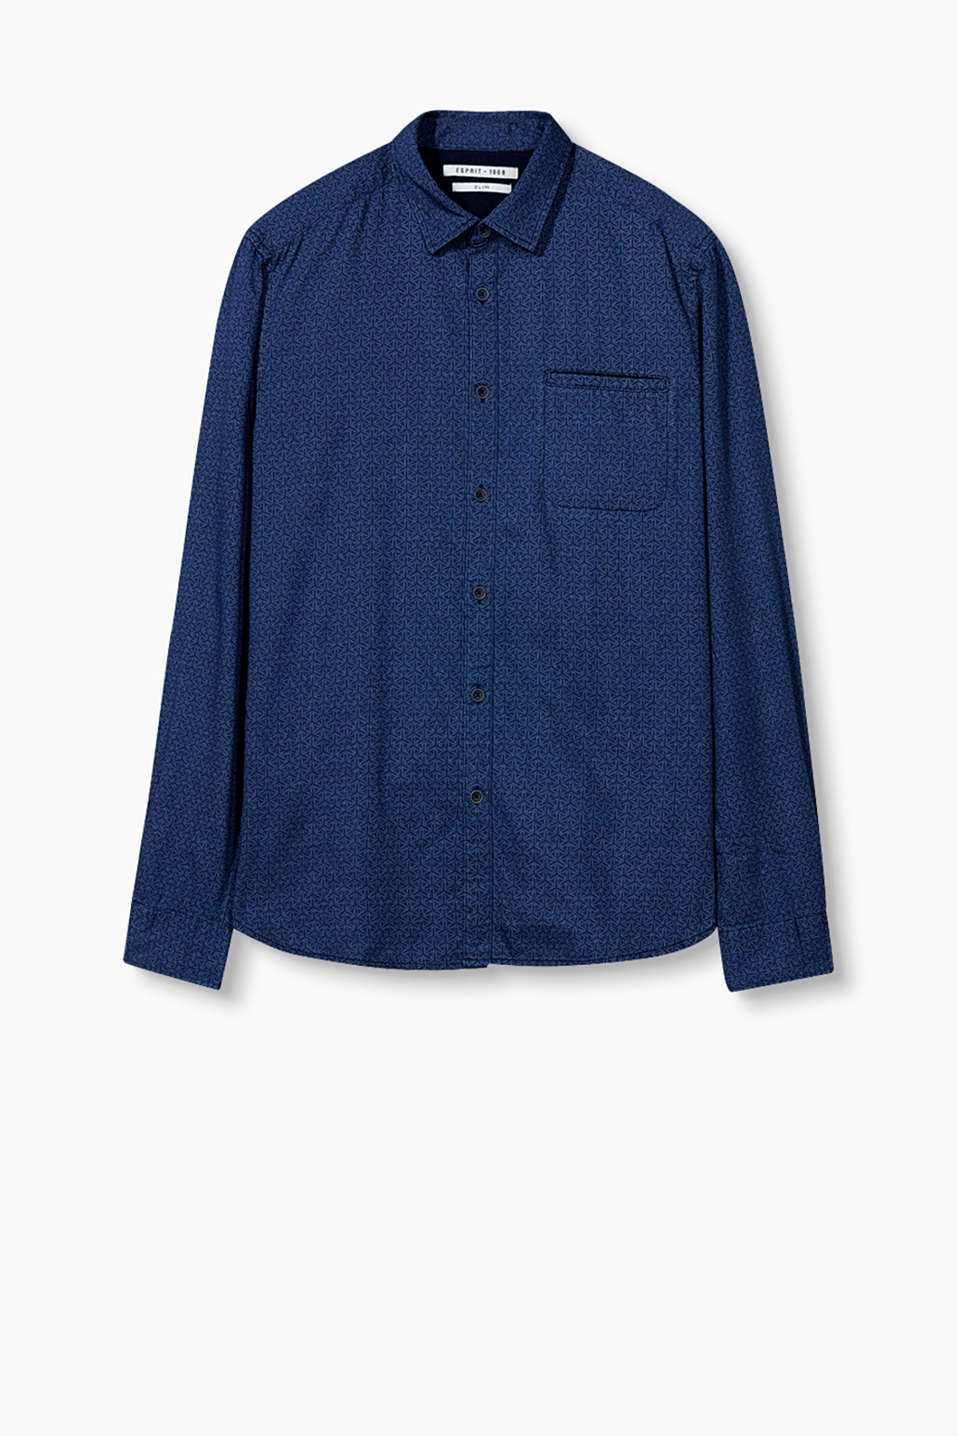 Casual boho style: shirt with an inset breast pocket